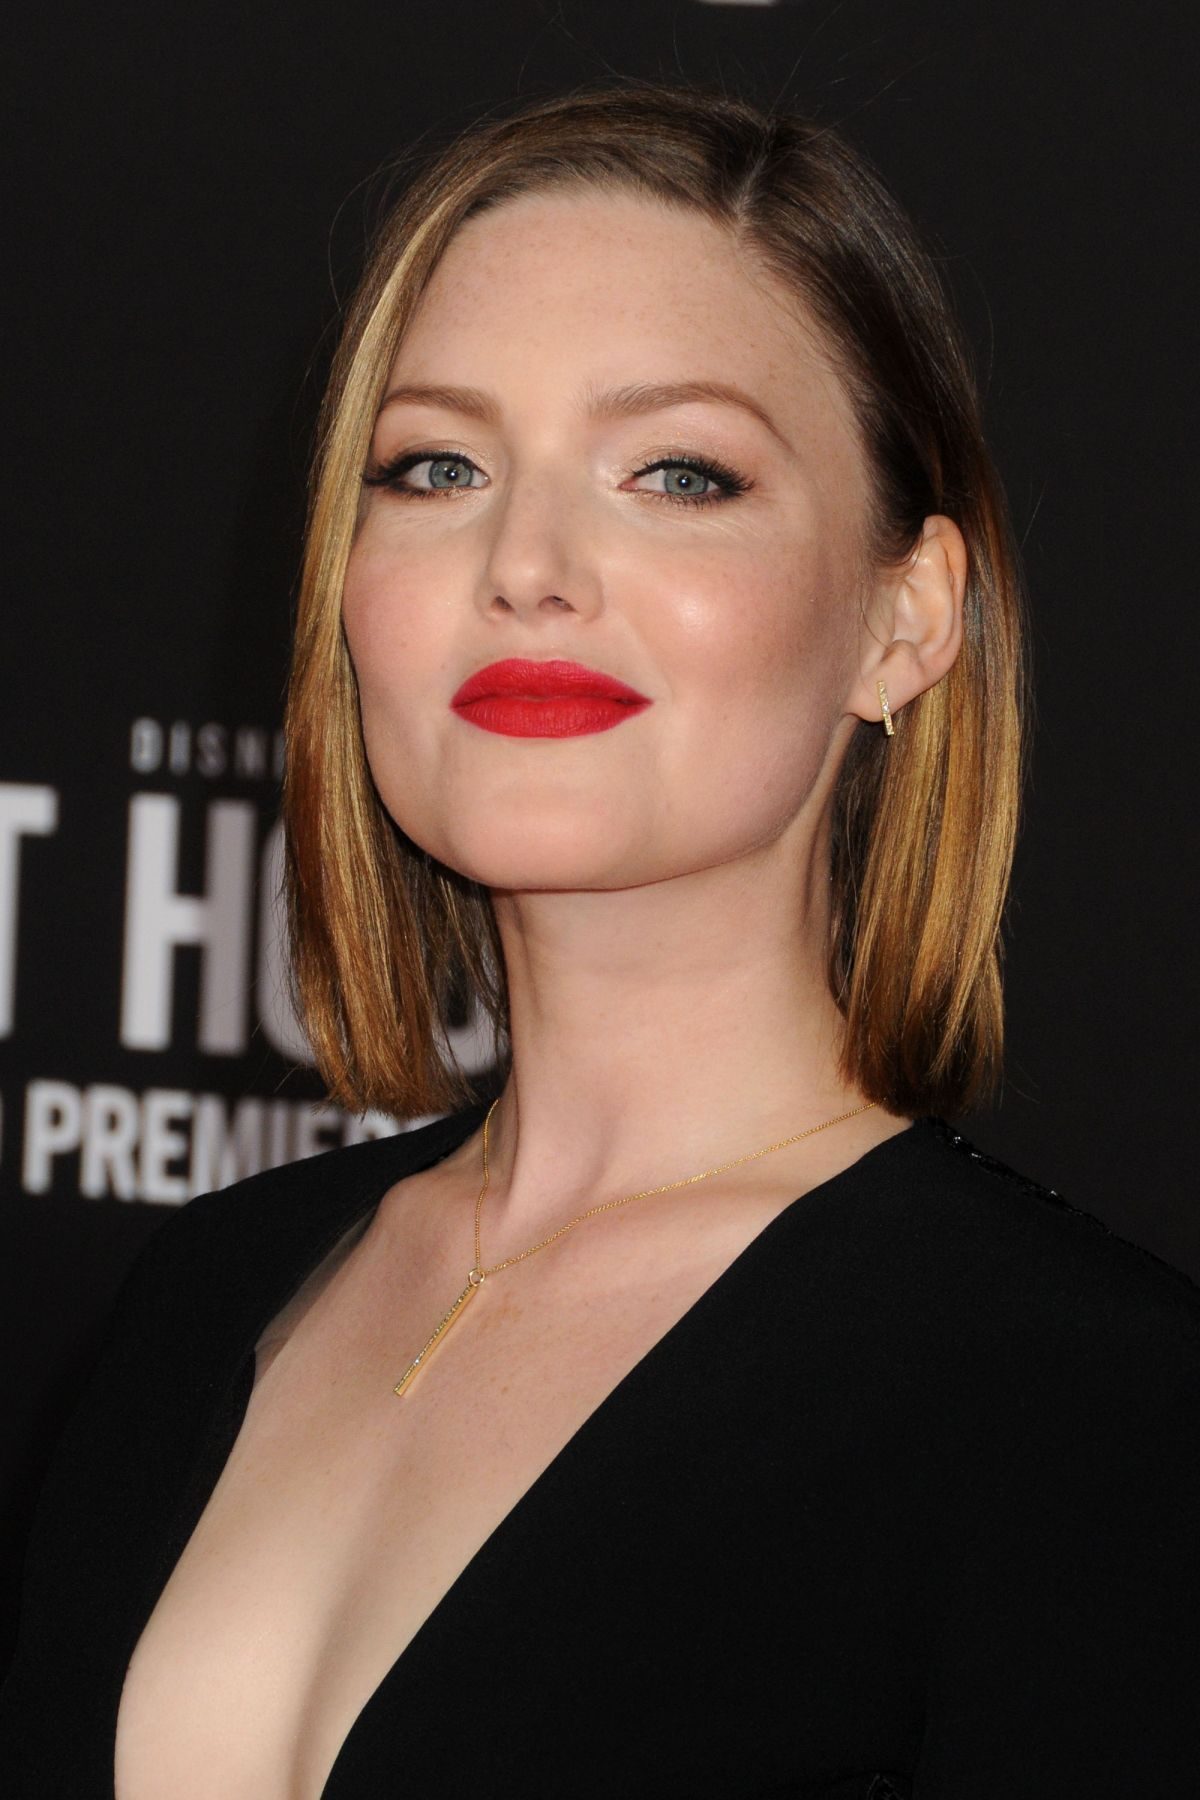 Holliday Grainger (born 1988)